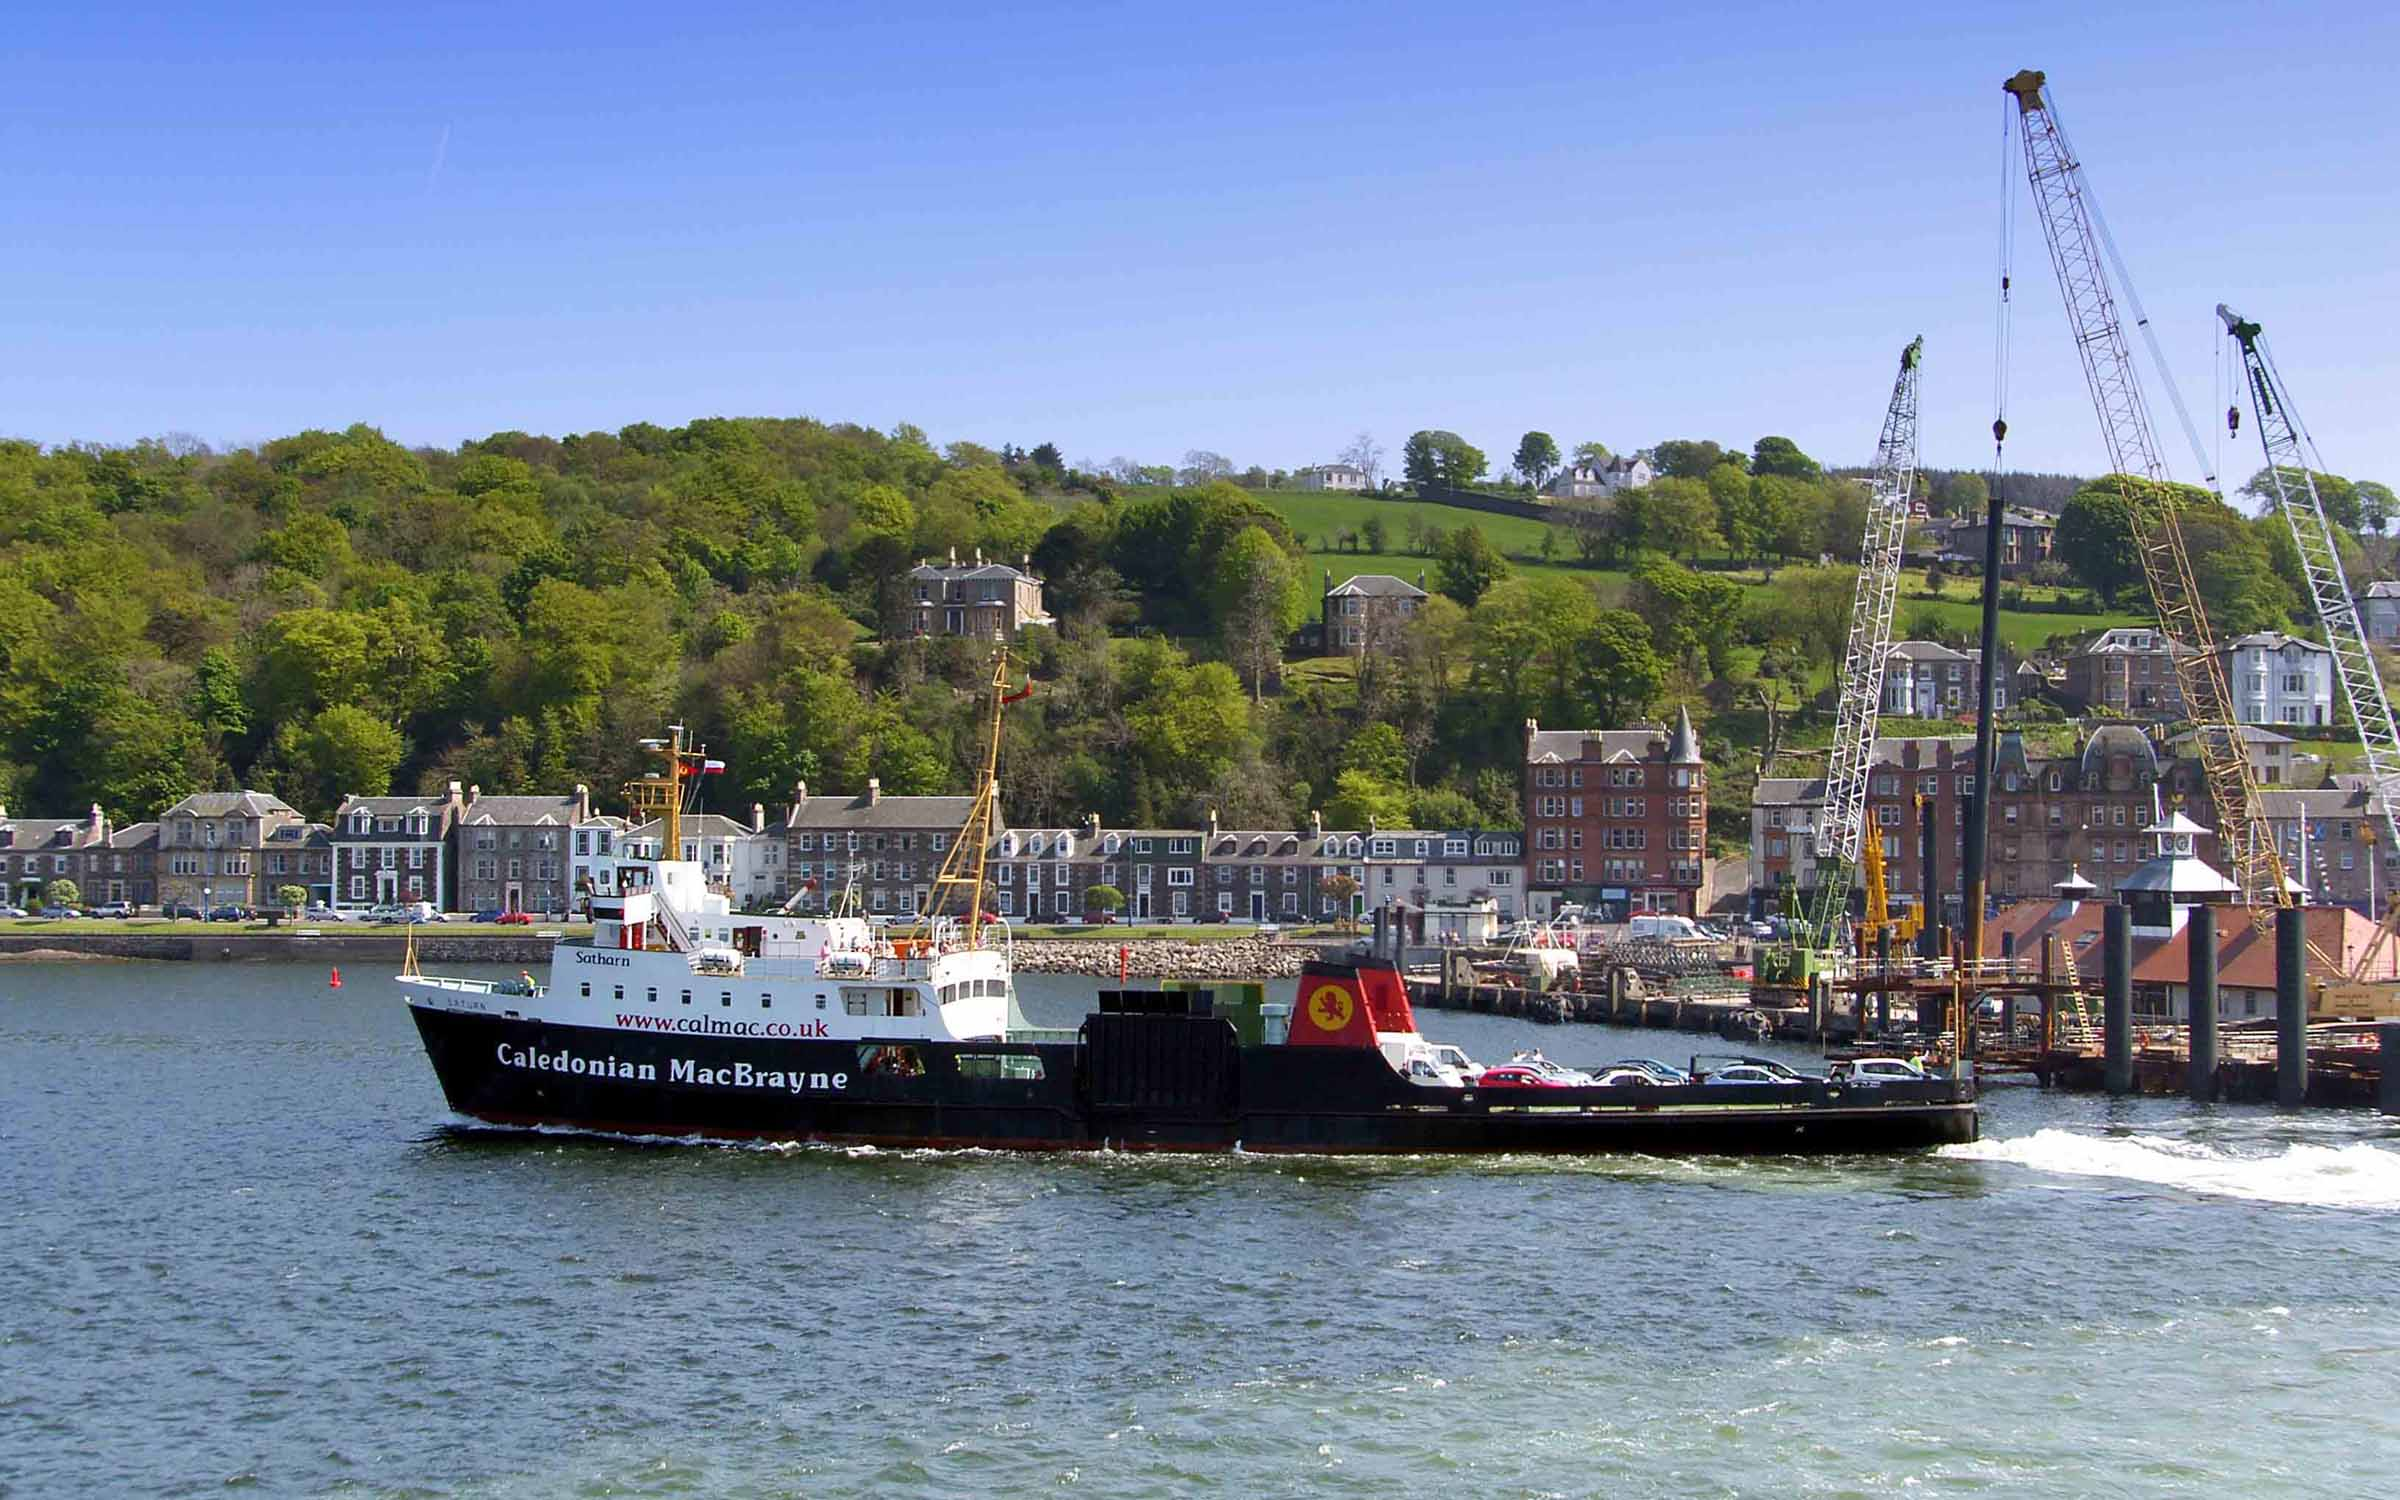 Saturn leaving Rothesay (Ships of CalMac)